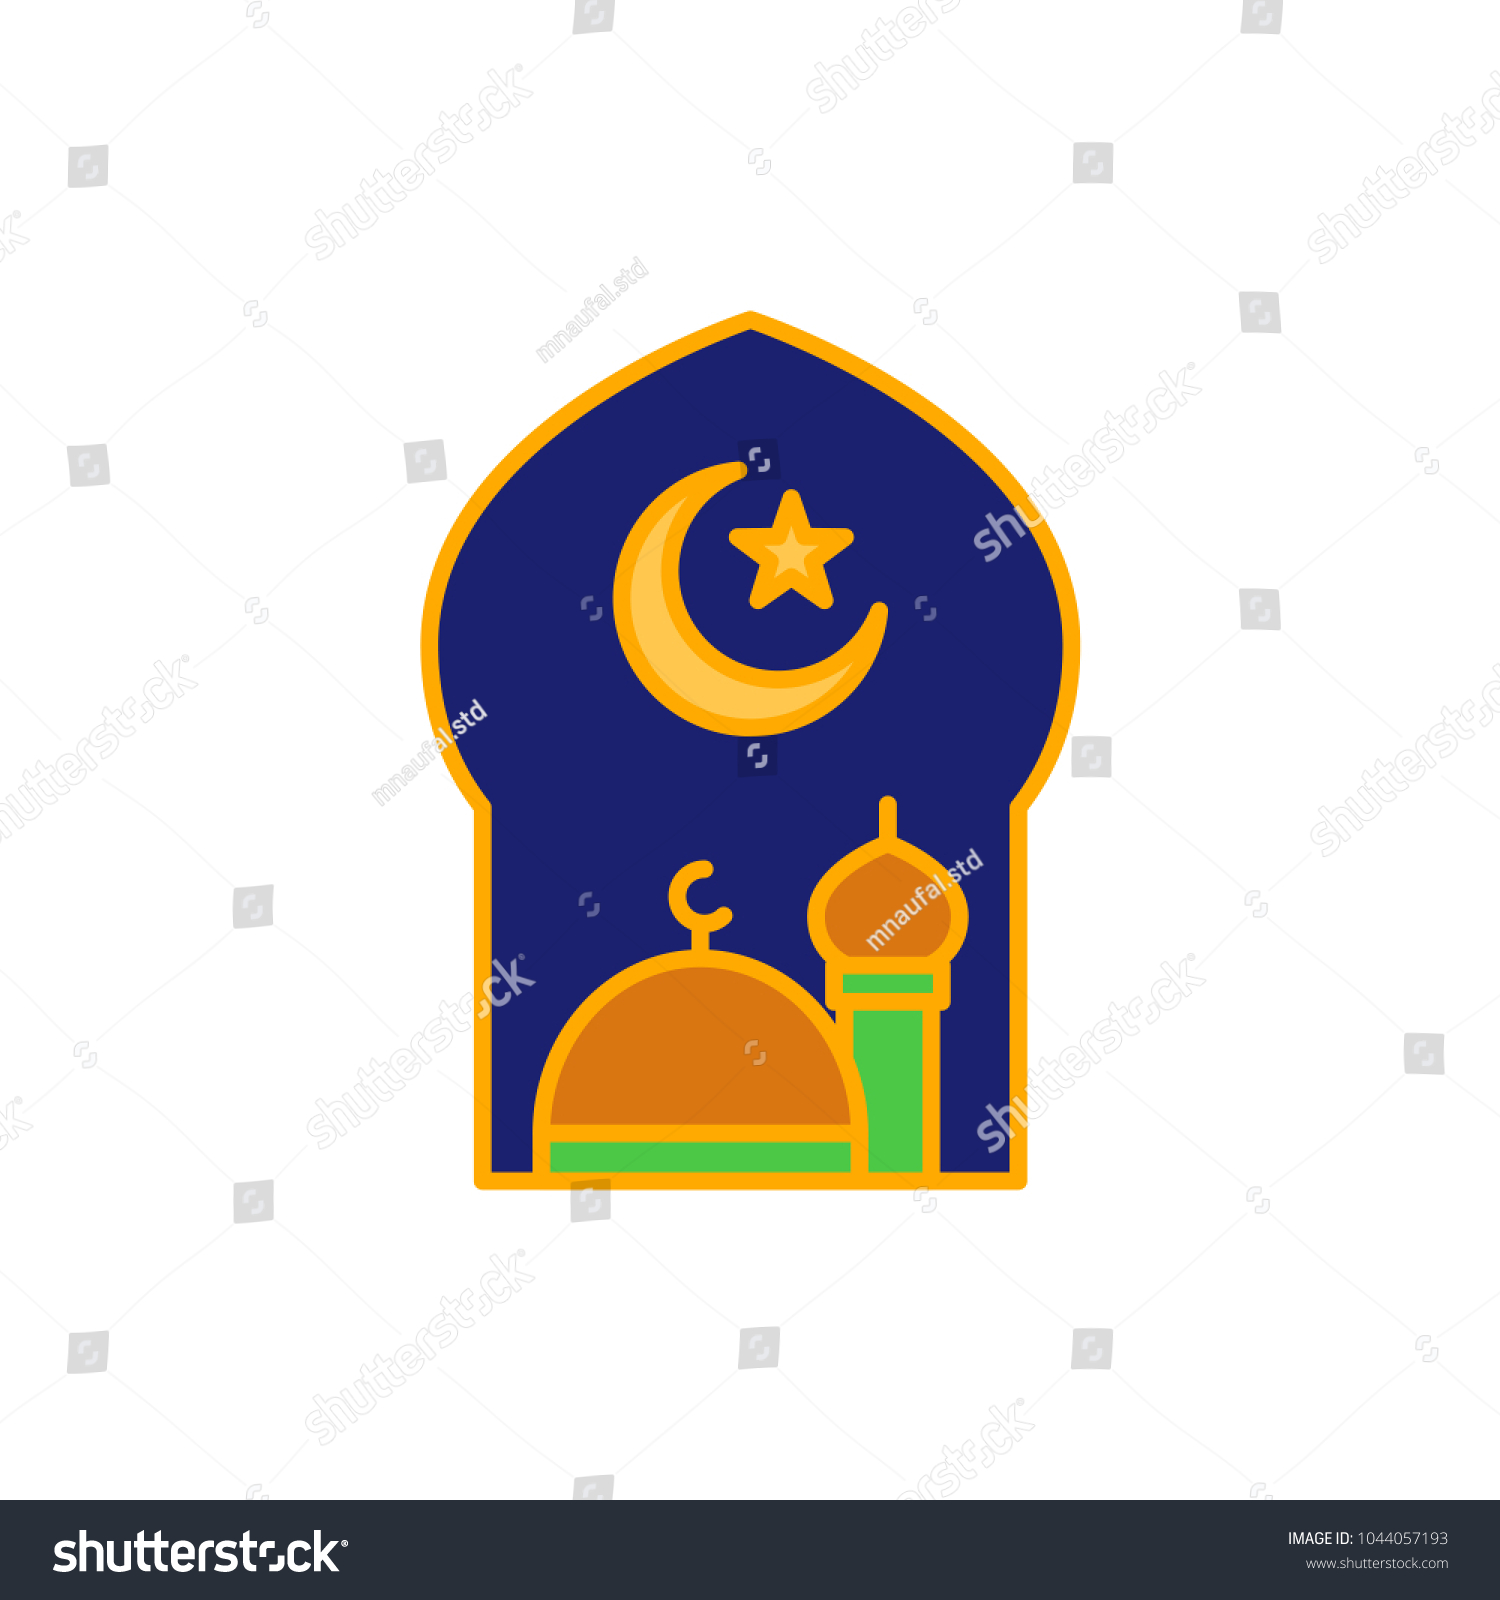 Great mosque crescent moon star islam stock vector 1044057193 great mosque with crescent moon and star for islam symbol simple monoline icon style for biocorpaavc Gallery